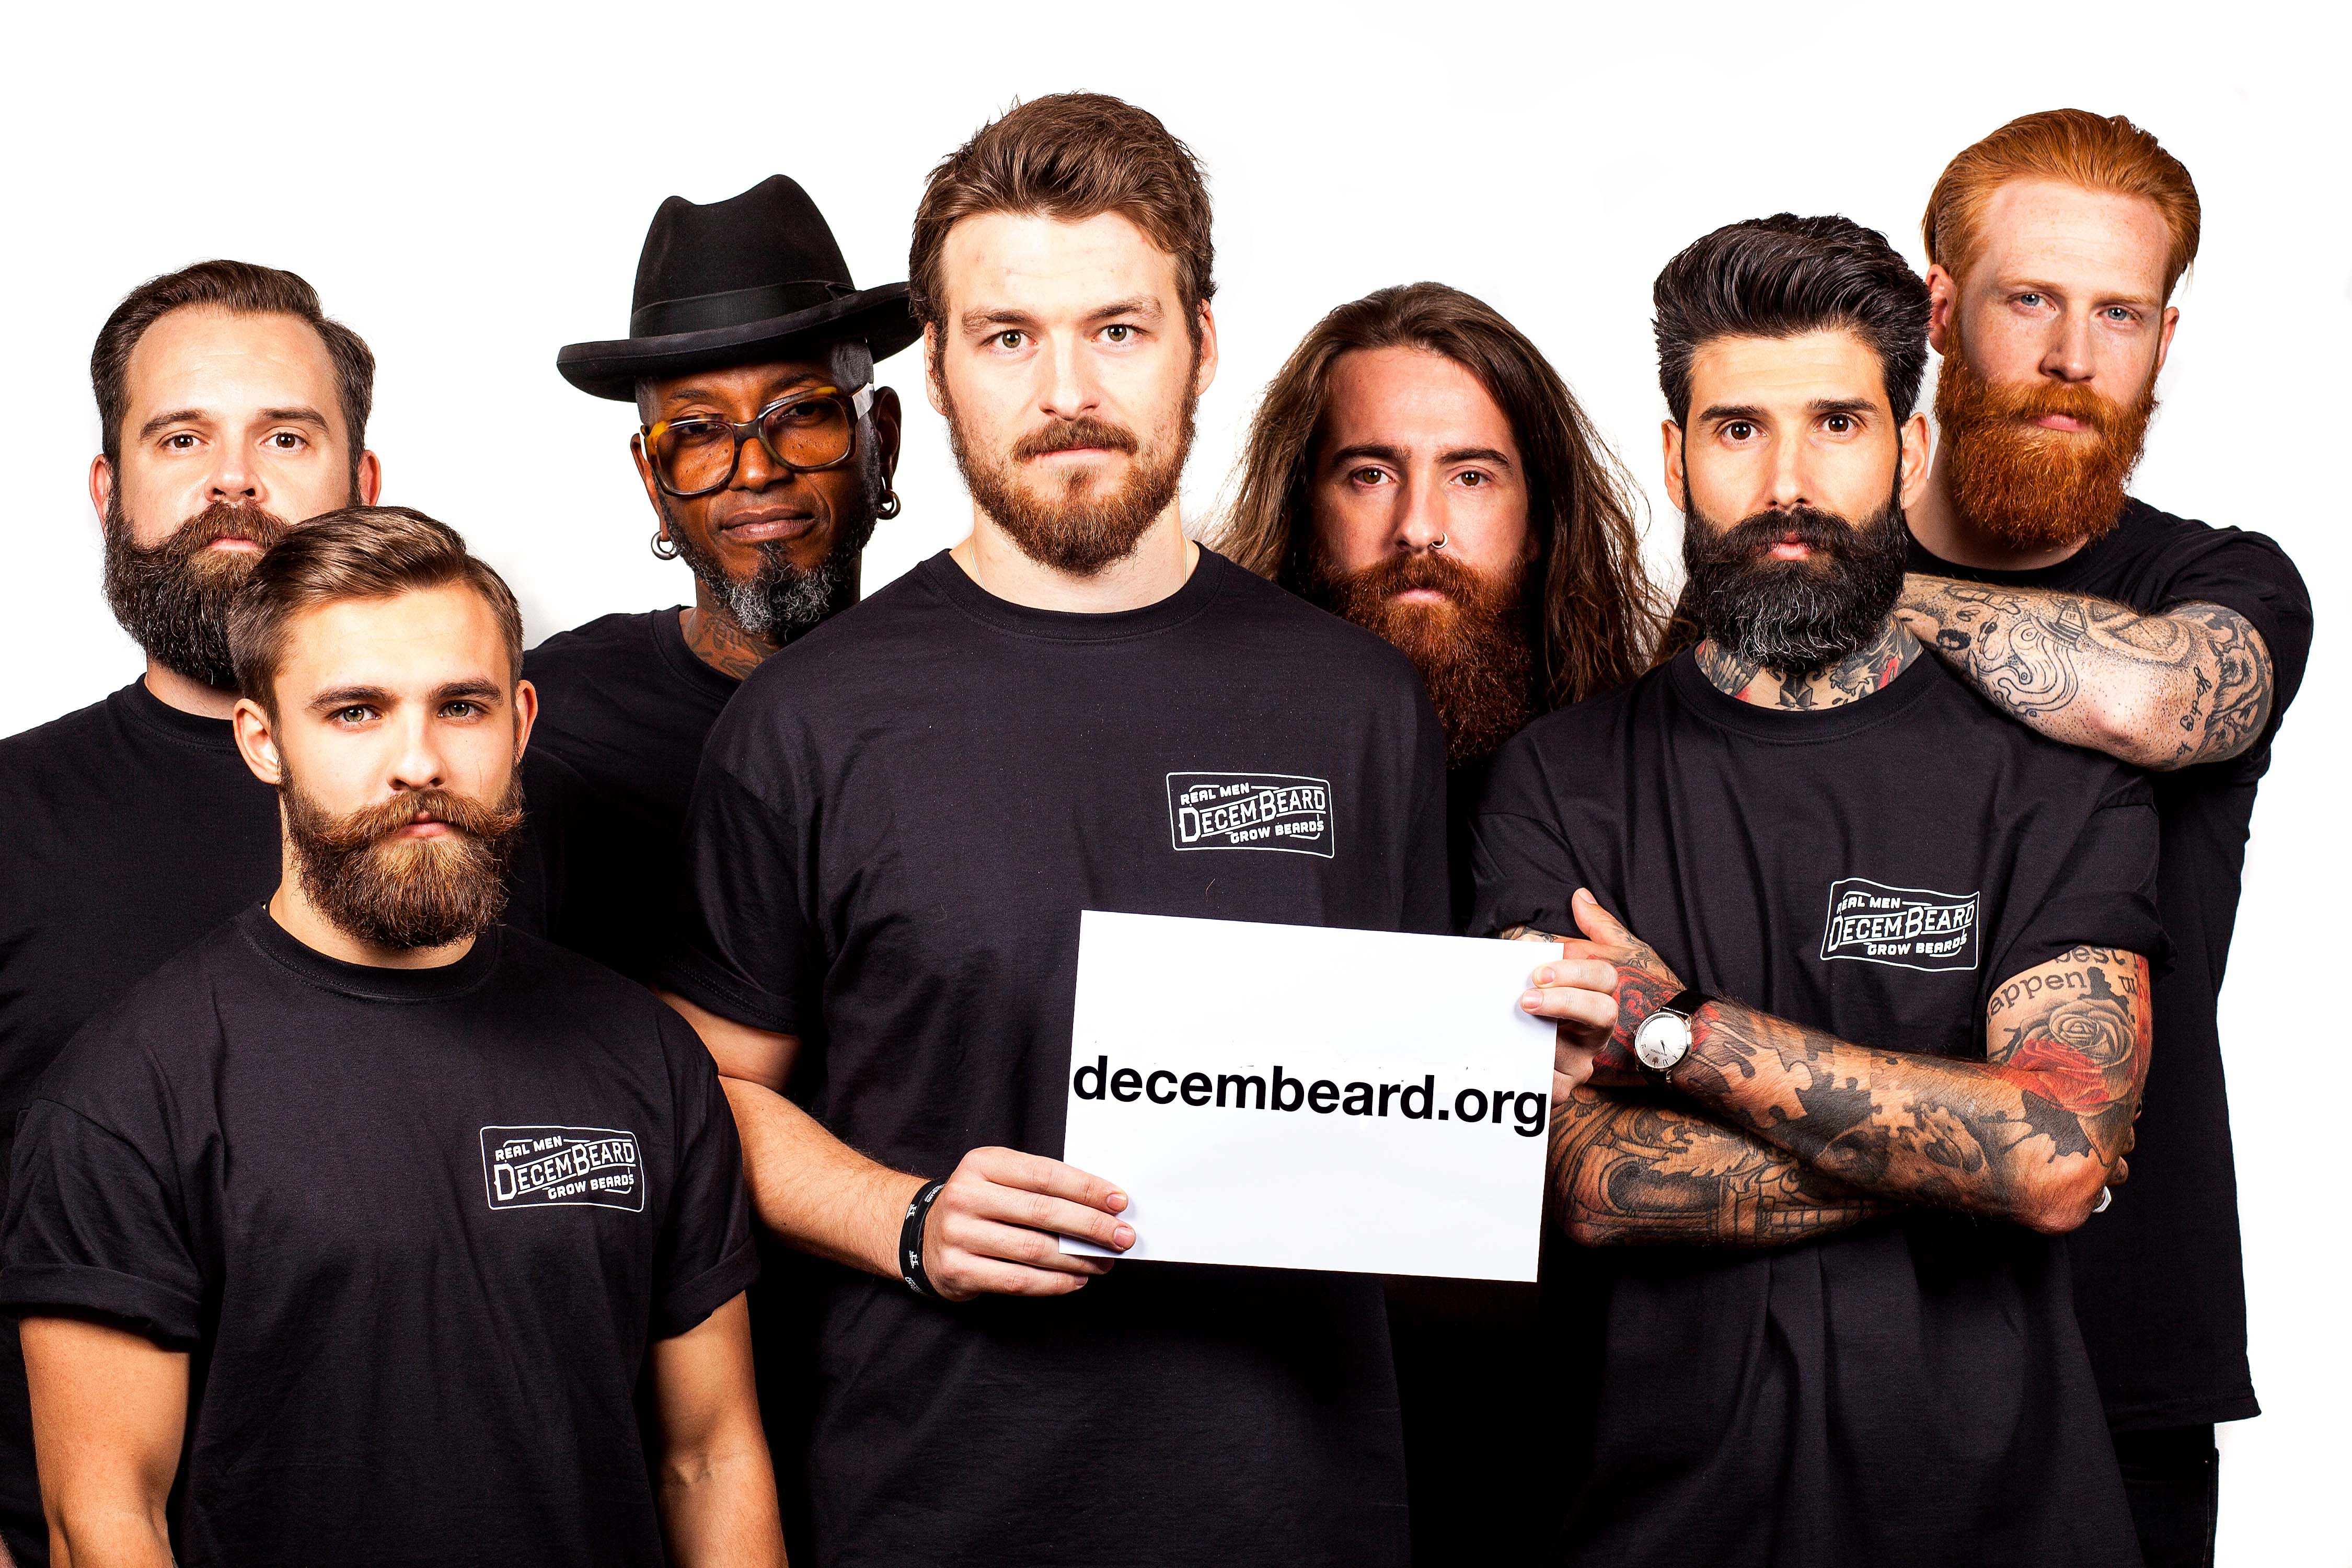 Growing your facial hair in aid of Bowel Cancer